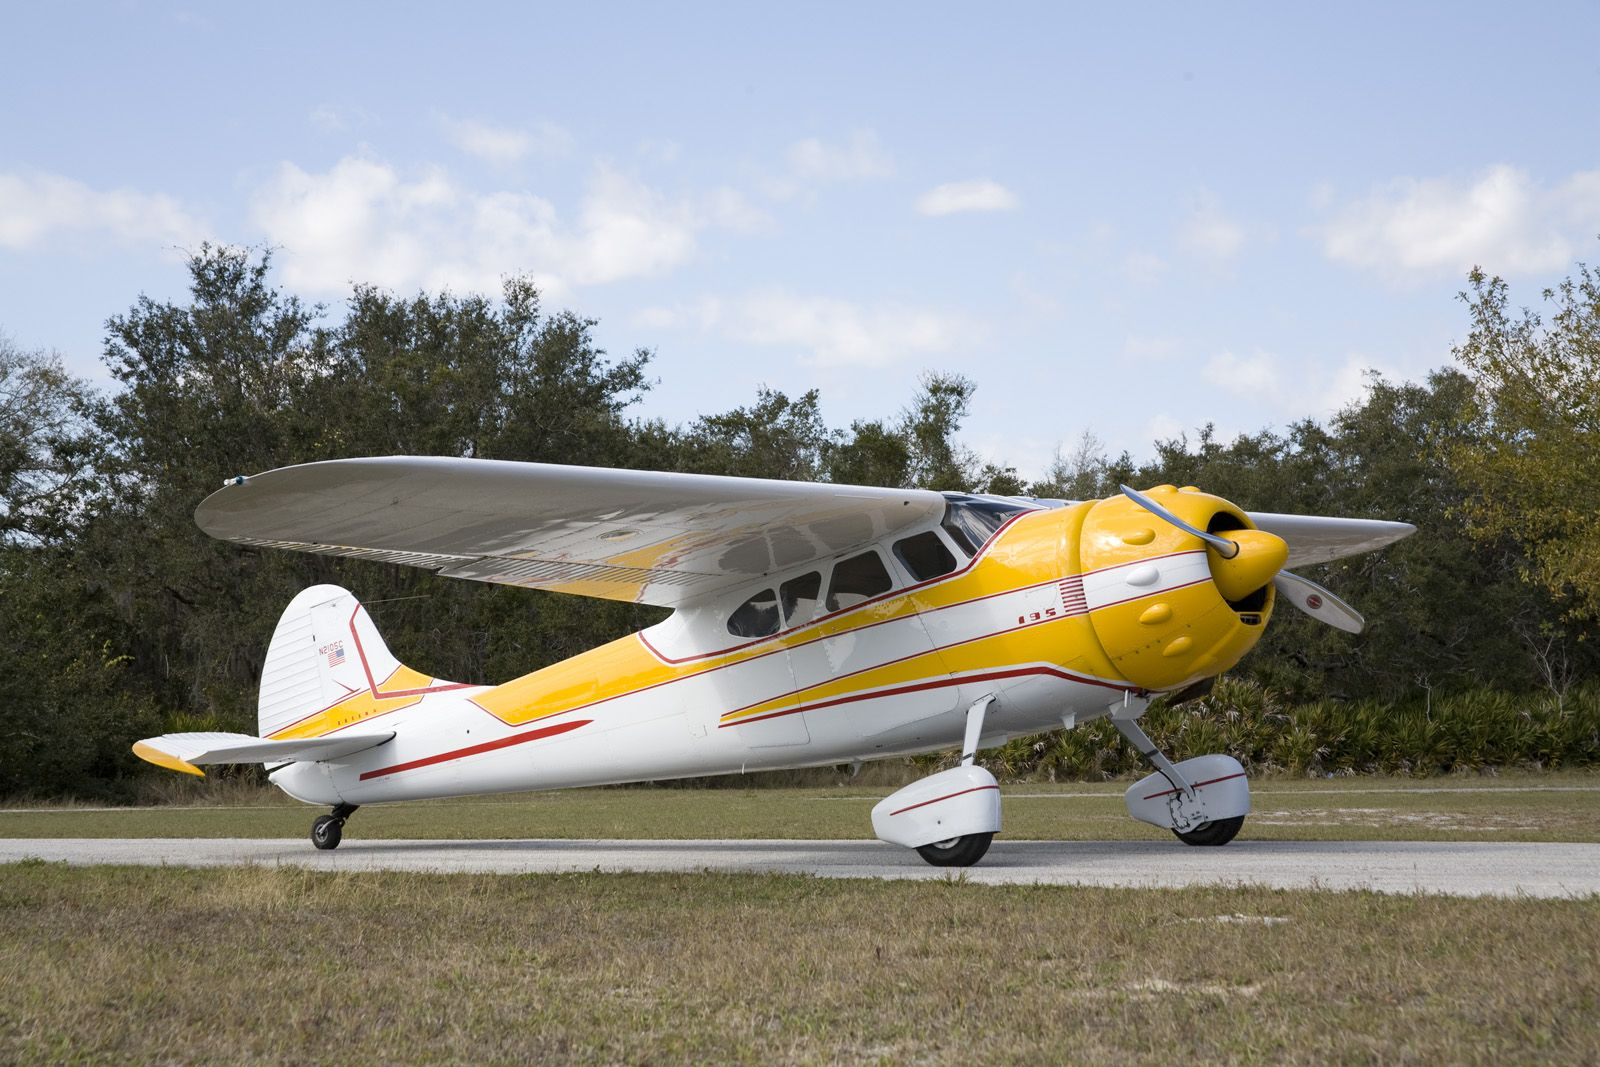 The piper pa 28 cherokee is a family of light aircraft designed for flight training air taxi and personal use it is built by piper aircraft